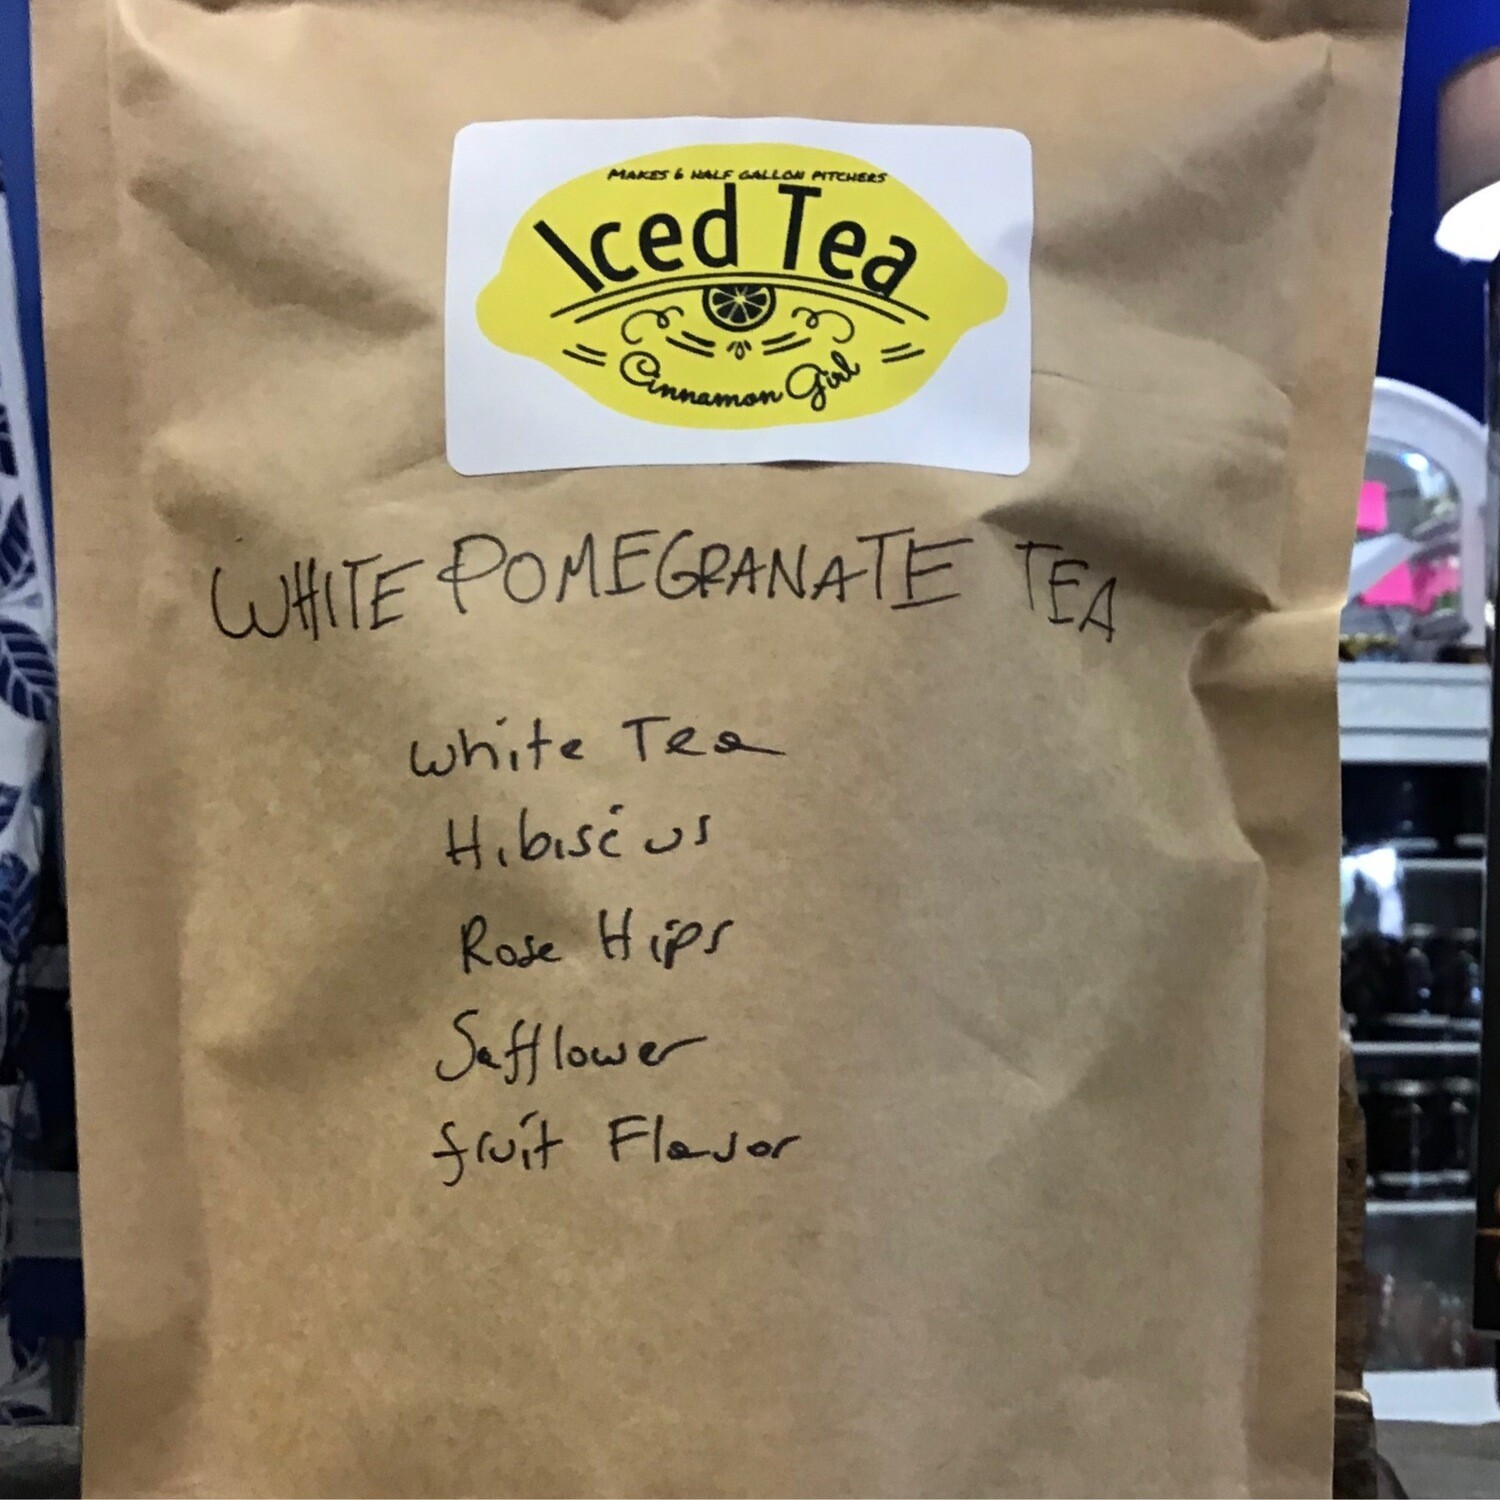 White Pomegranate 6 Iced Tea Pitcher Bags